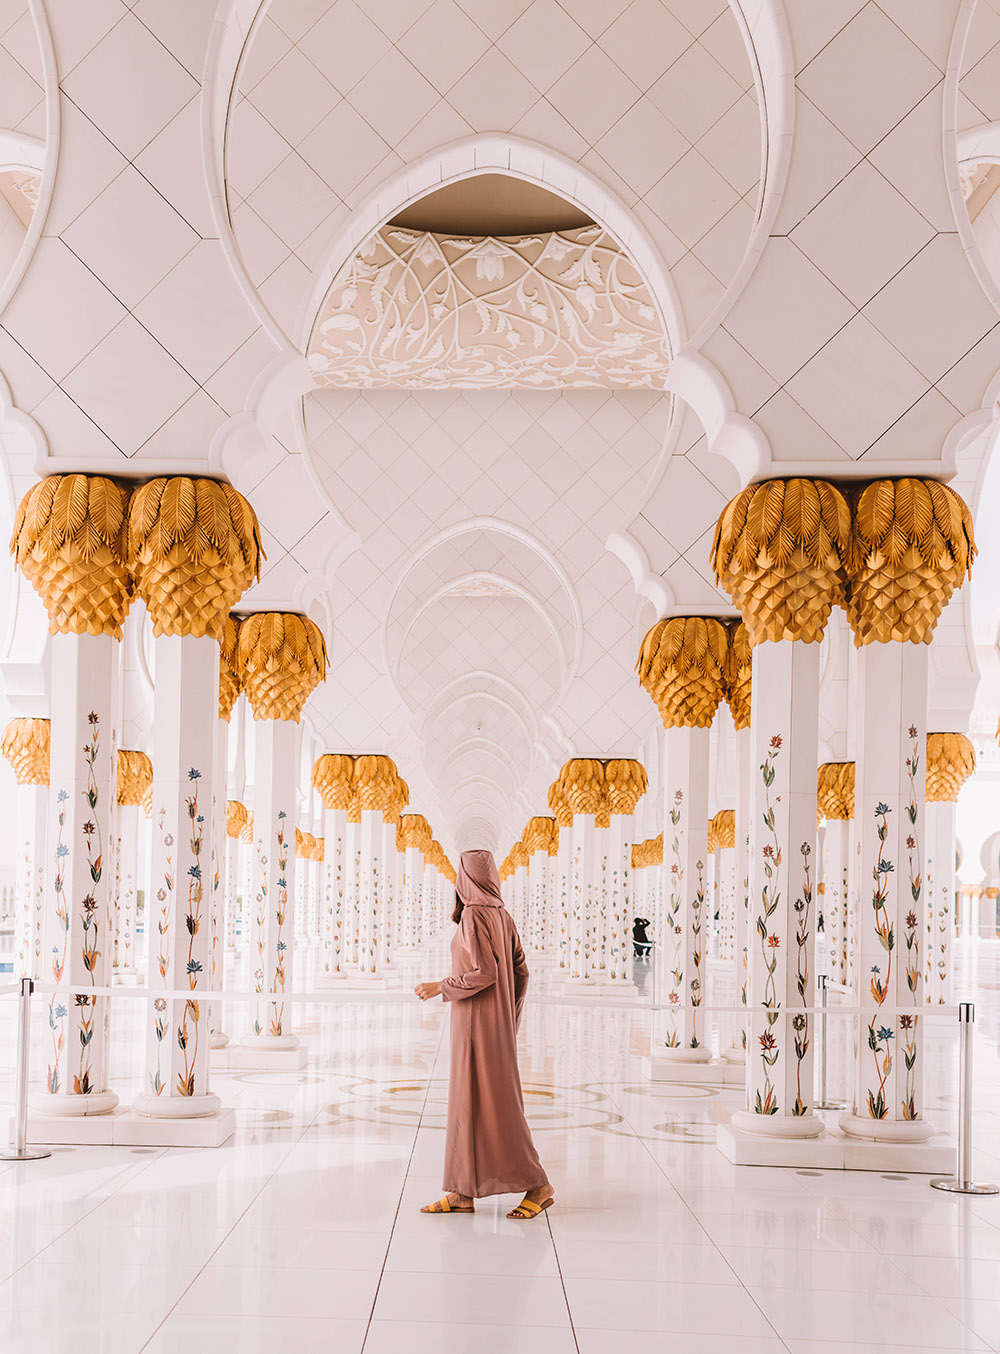 Where to visit in Abu Dhabi, What to see in Abu Dhabi, What to see for free in Abu Dhabi, Sheikh Zayed Grand Mosque, Instagram Places in Abu Dhabi